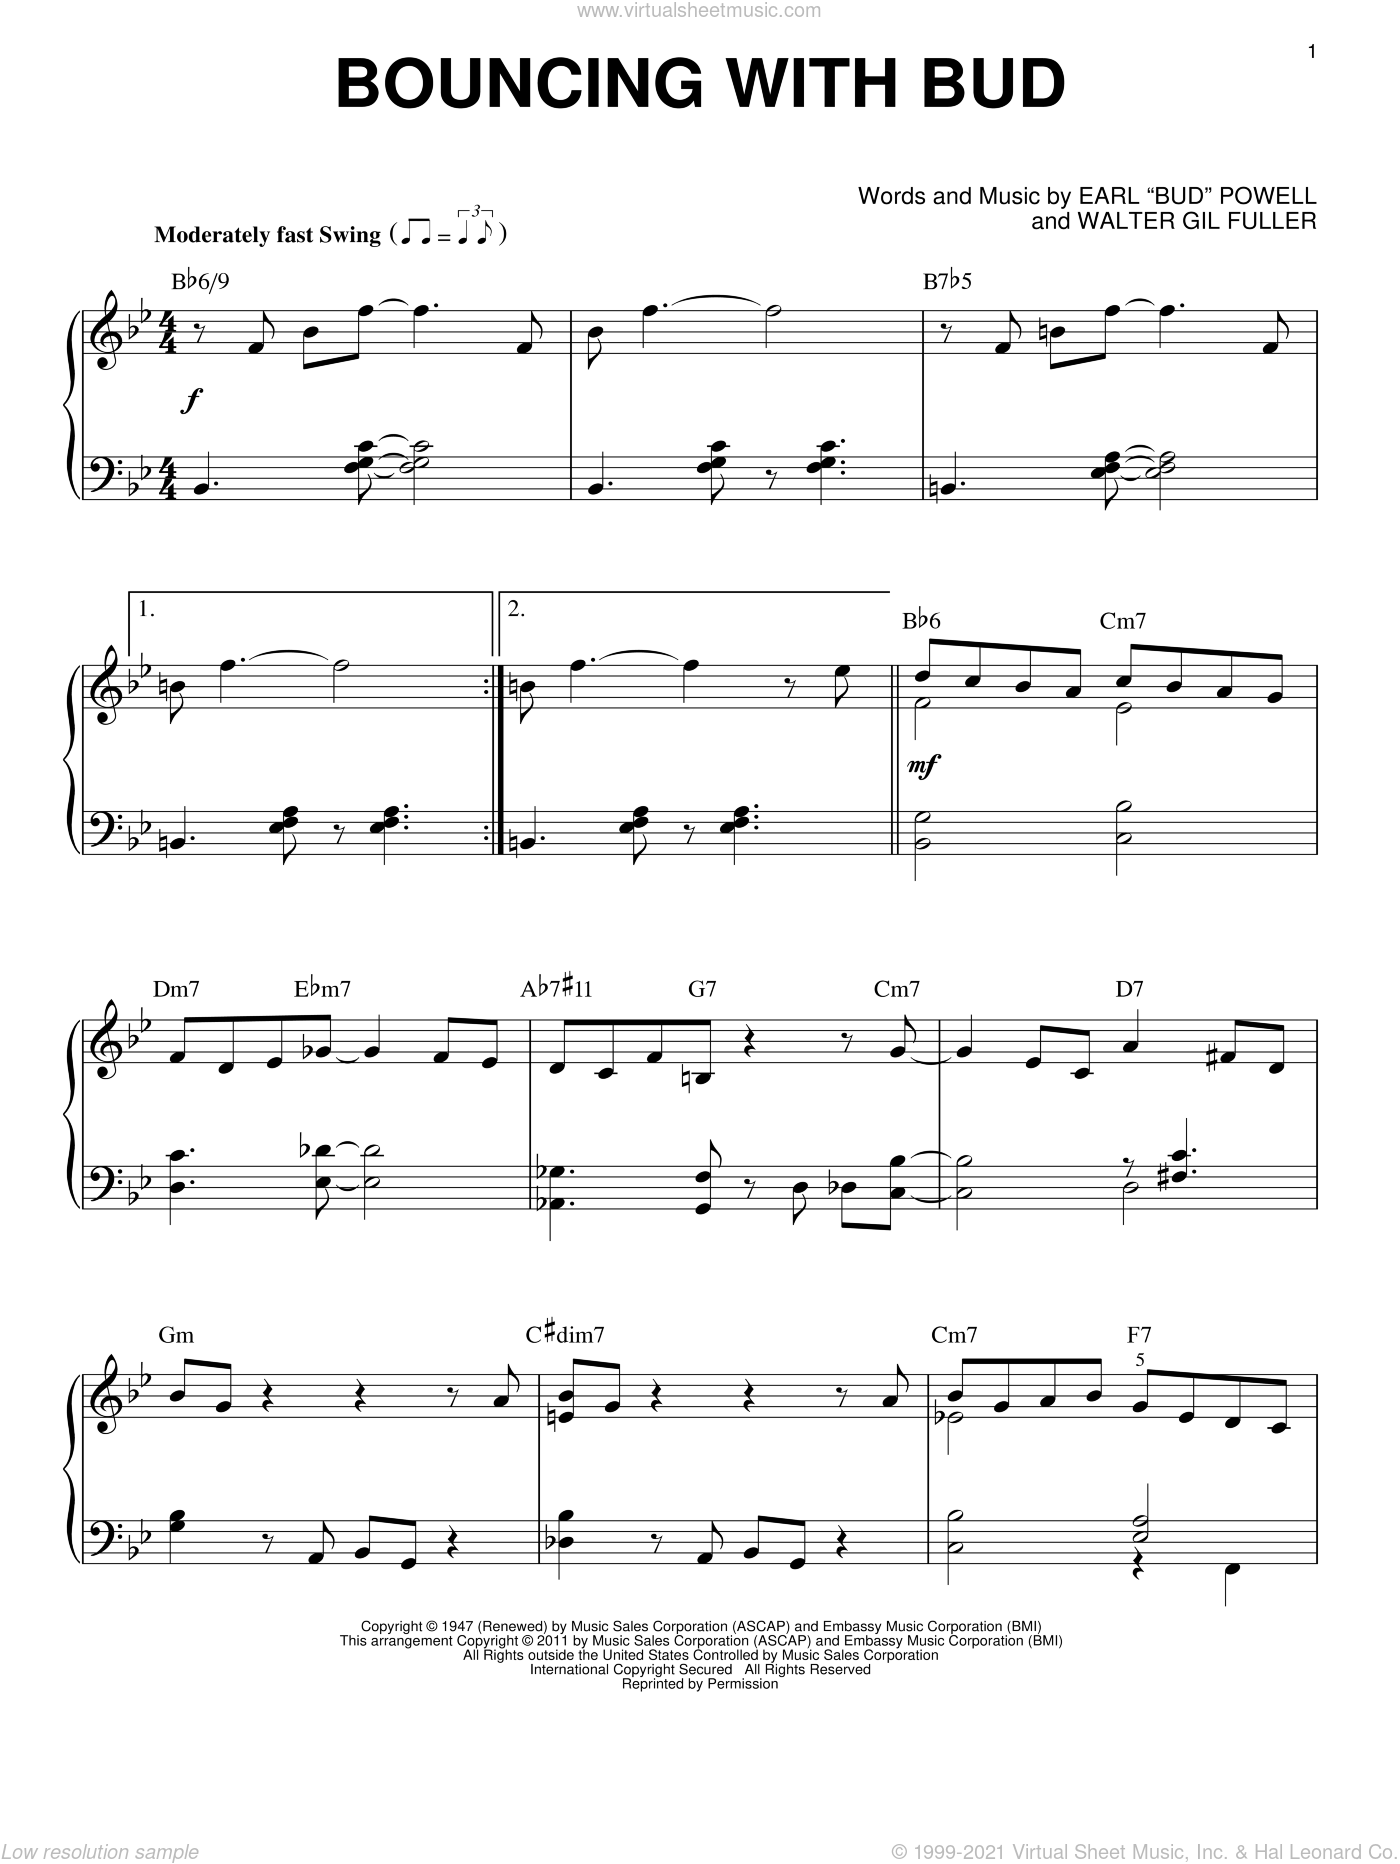 Bouncing With Bud sheet music for piano solo by Bud Powell and Walter Gil Fuller, intermediate skill level